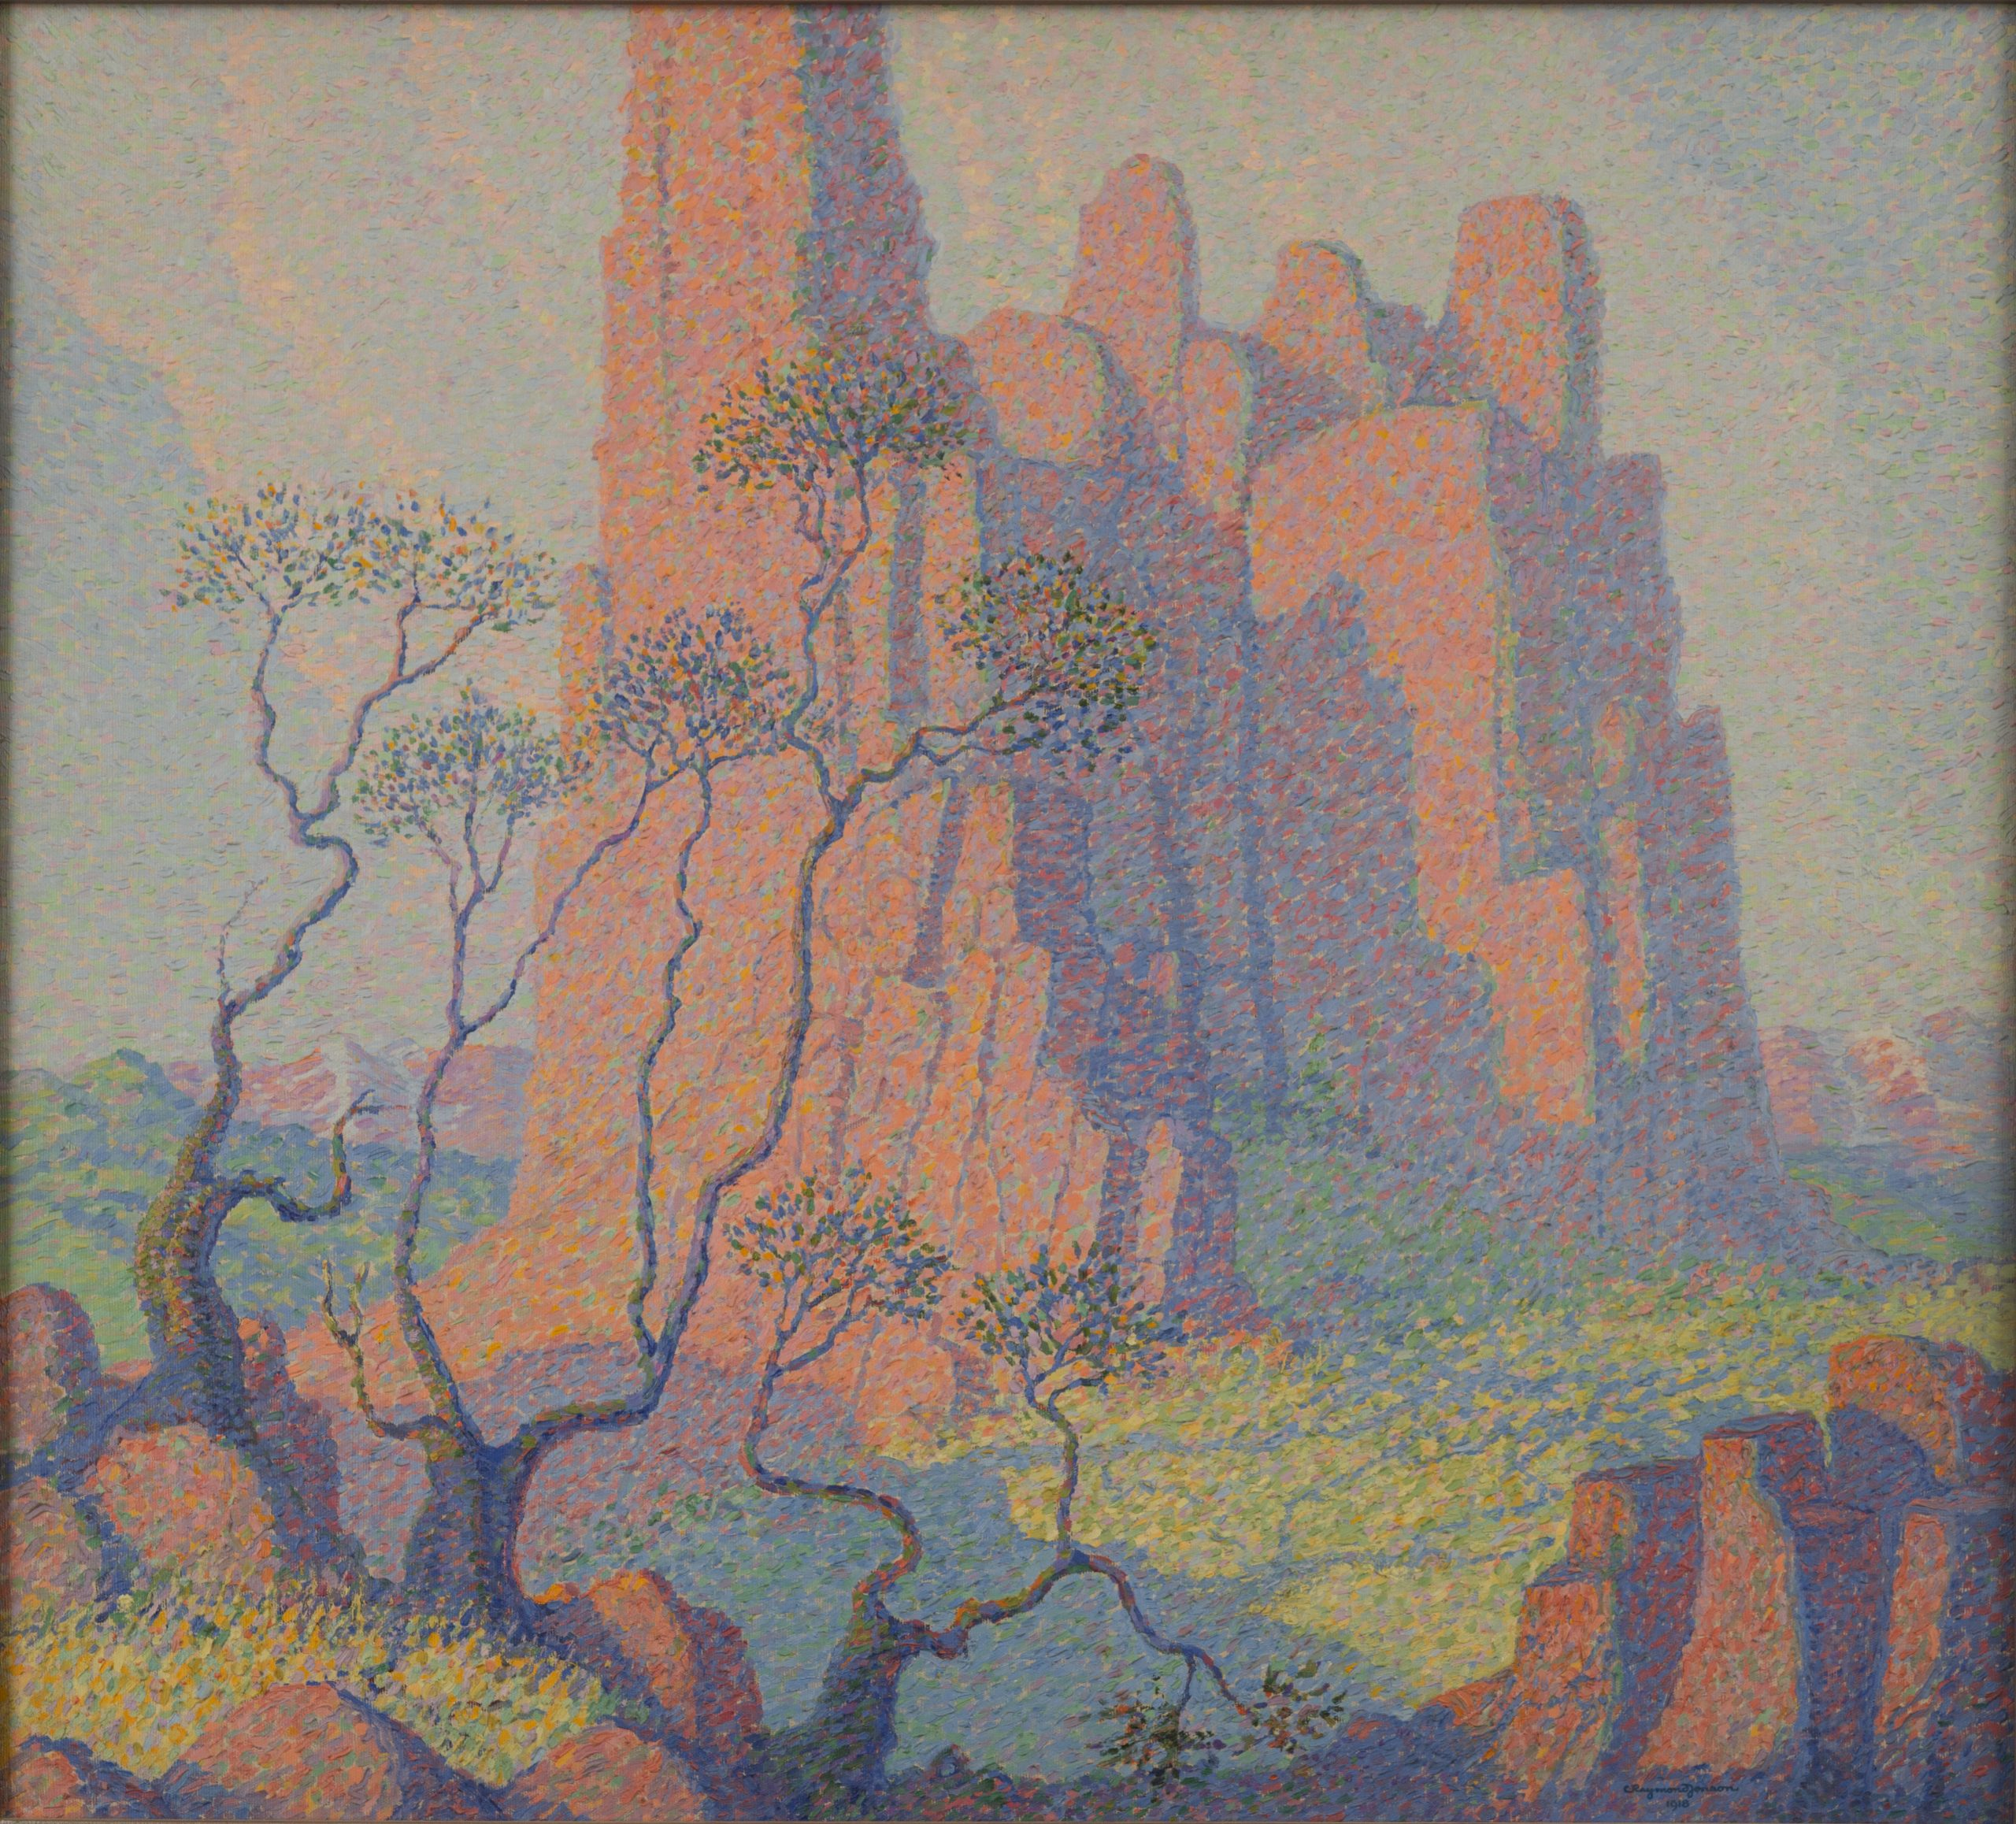 Red Rocks - Colorado, 1918, an oil painting on canvas by Raymond Jonson.